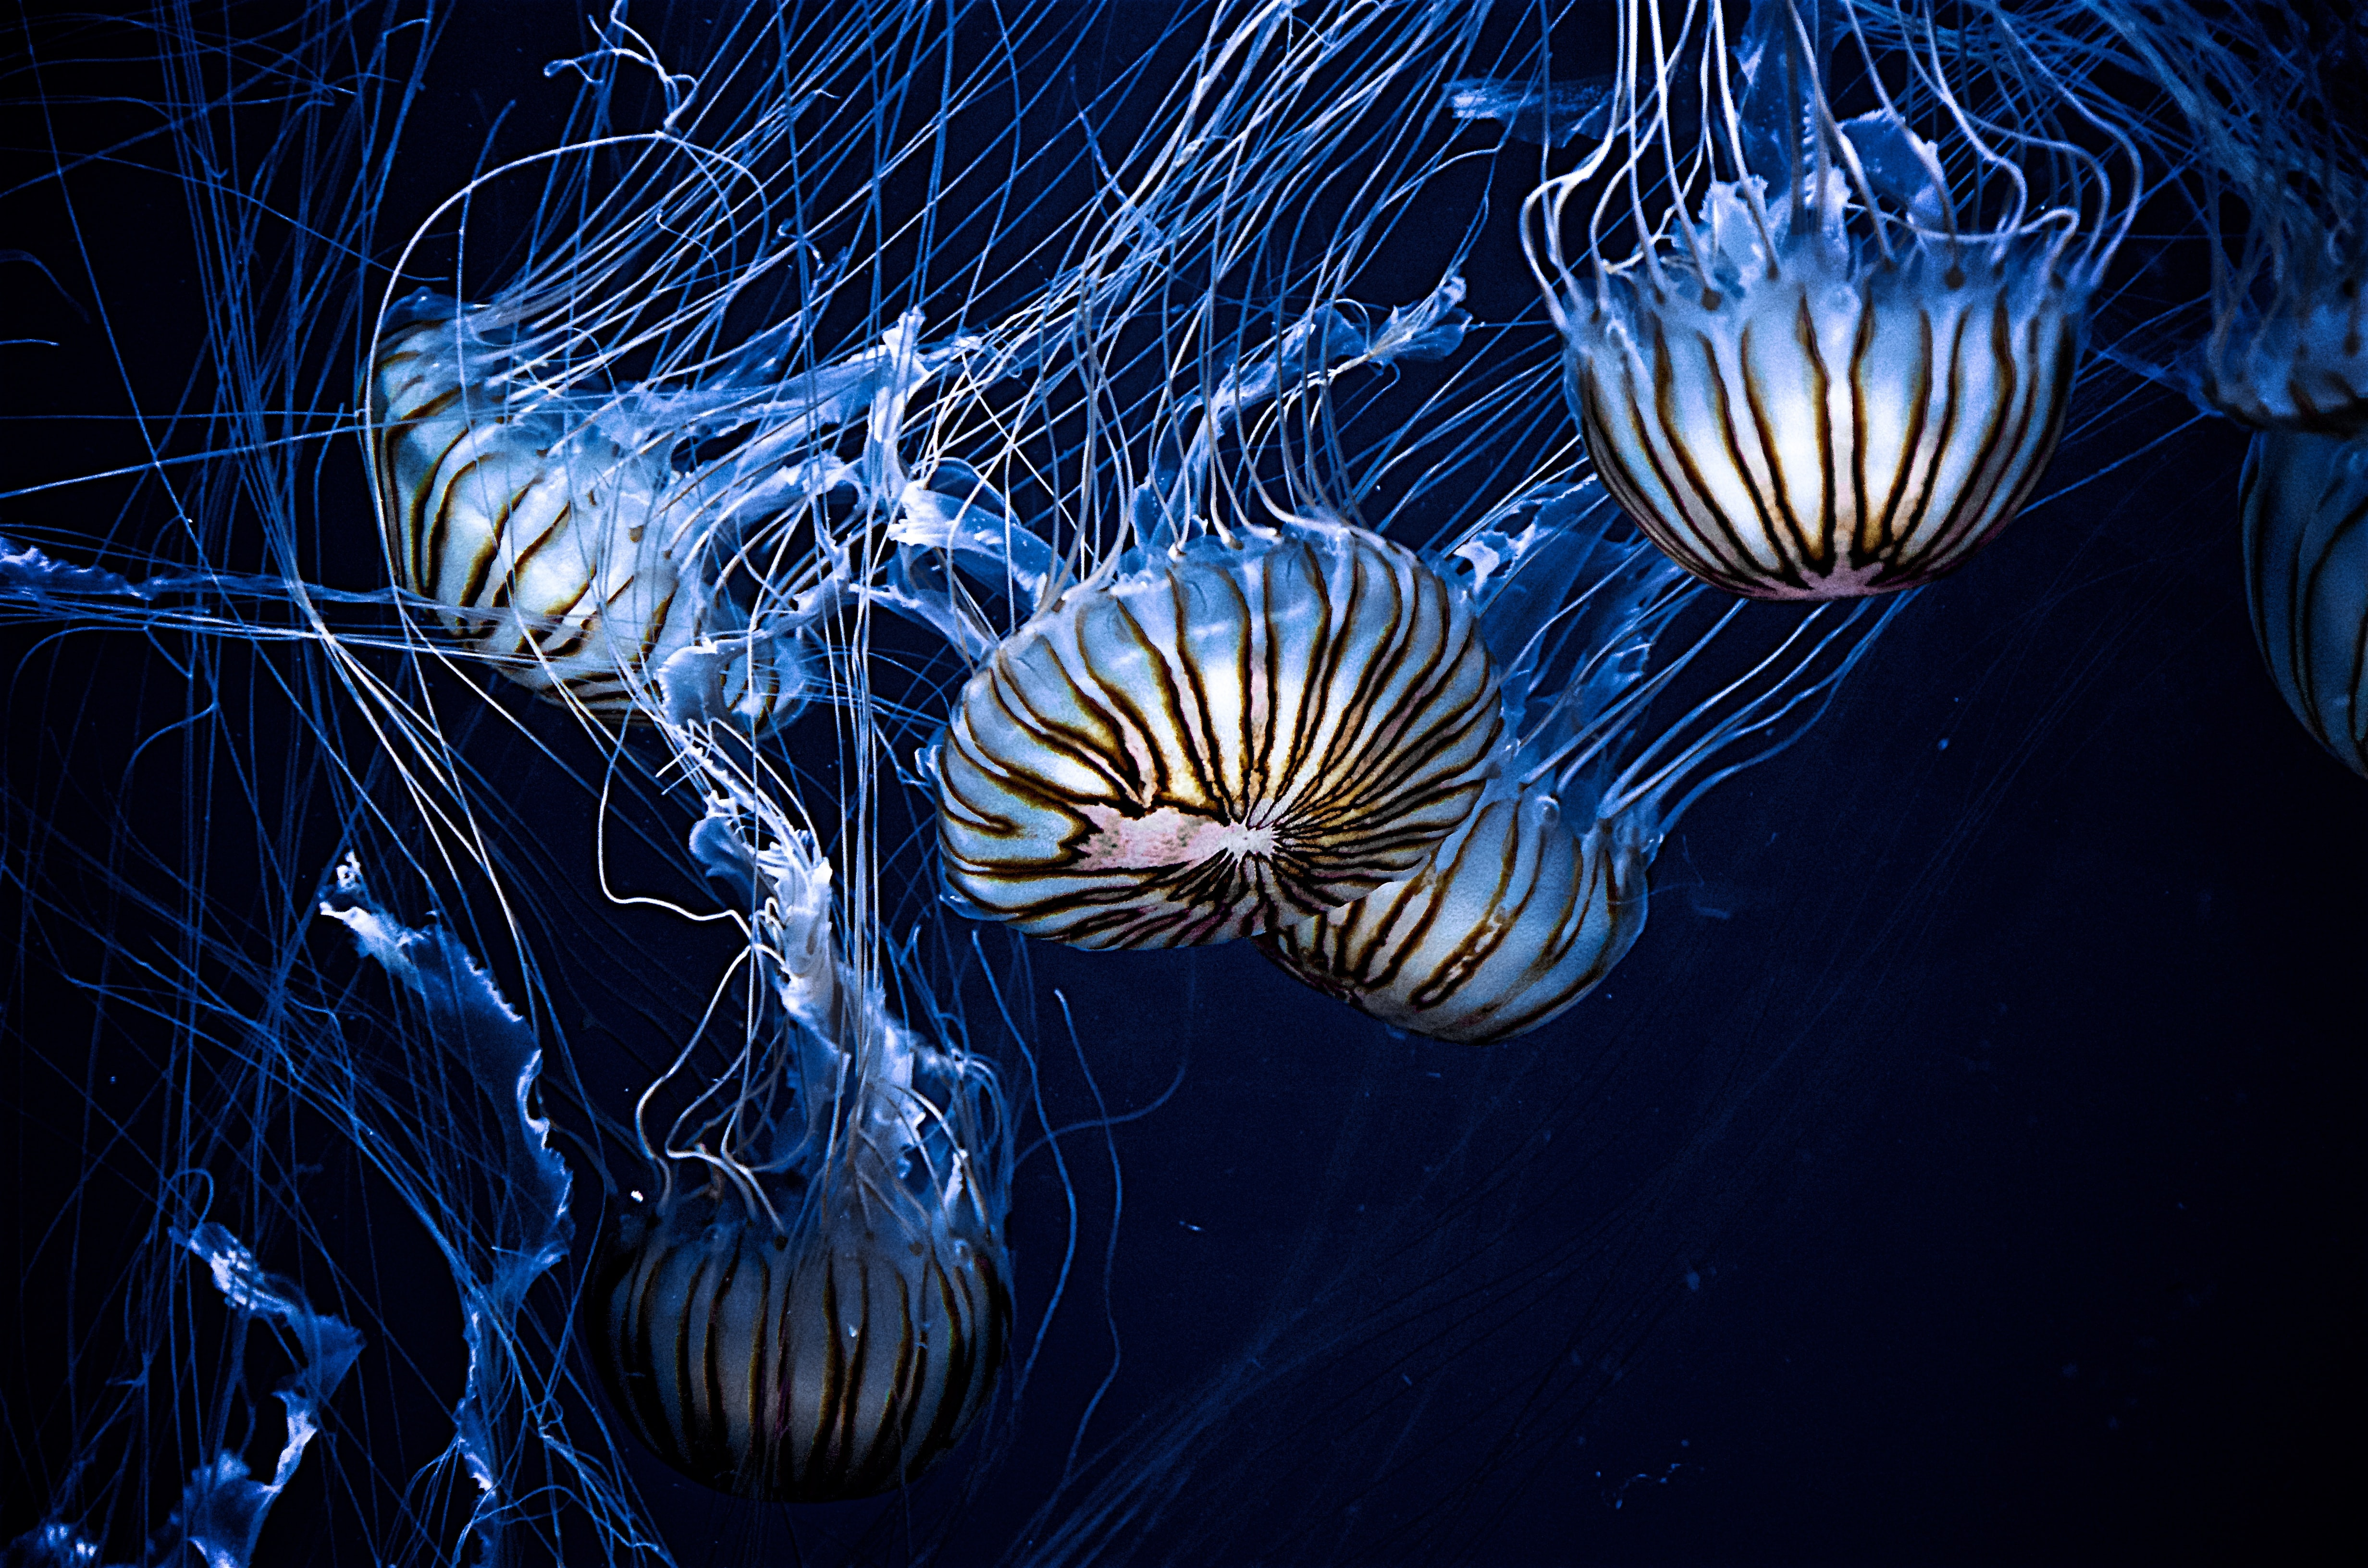 several jellyfishes underwater